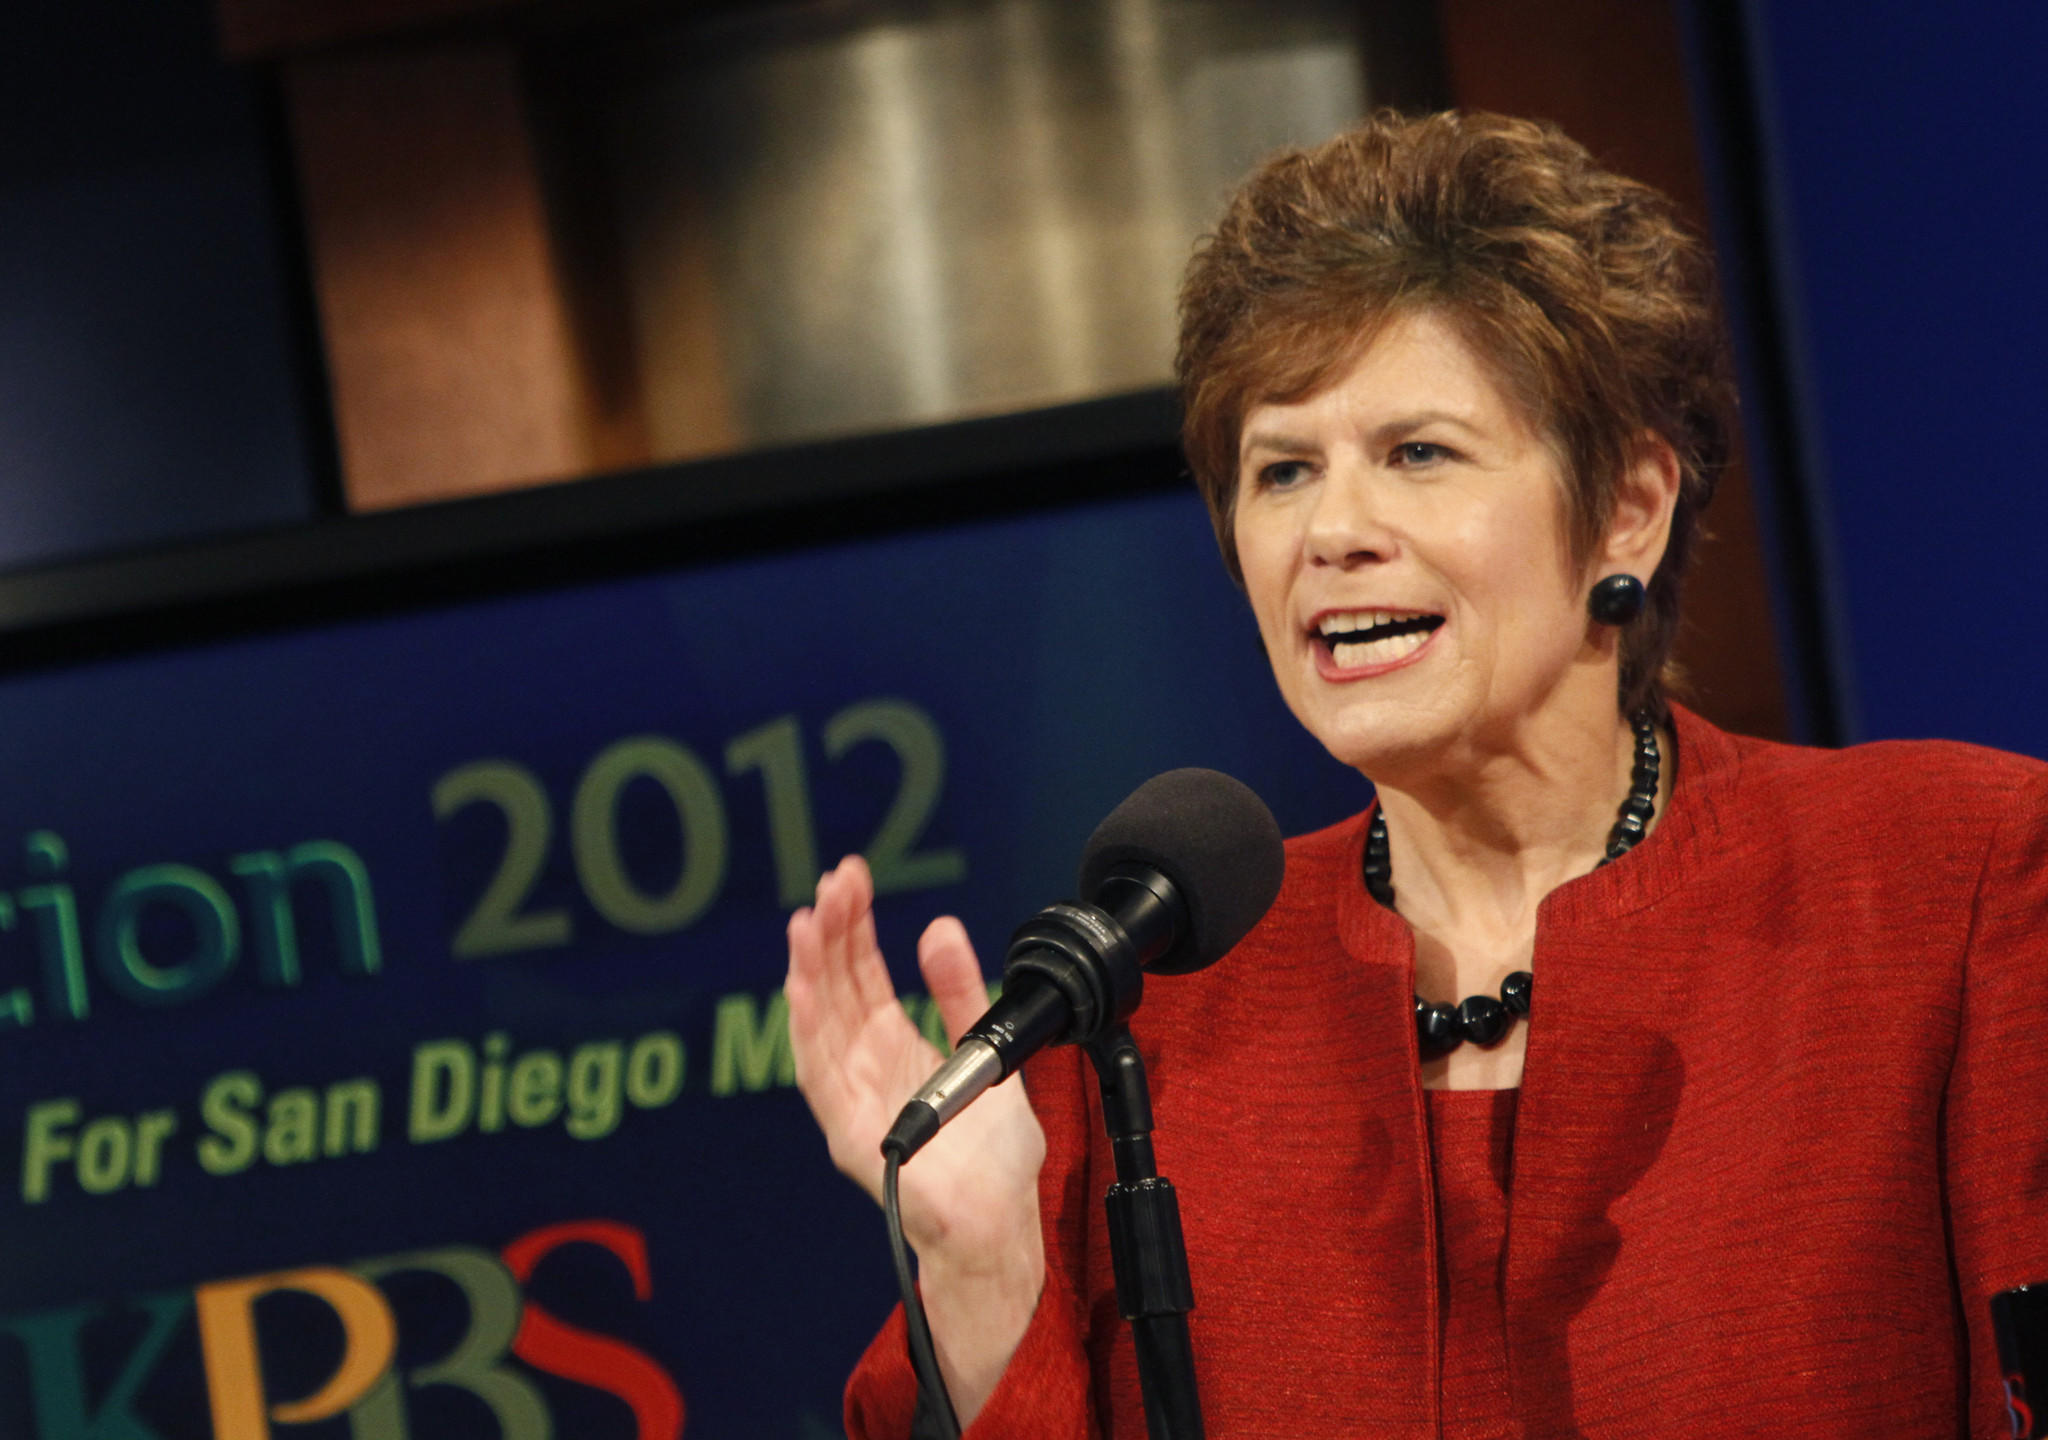 San Diego County Dist. Atty. Bonnie Dumanis during her 2012 mayoral campaign. Now funding of that campaign is being investigated.